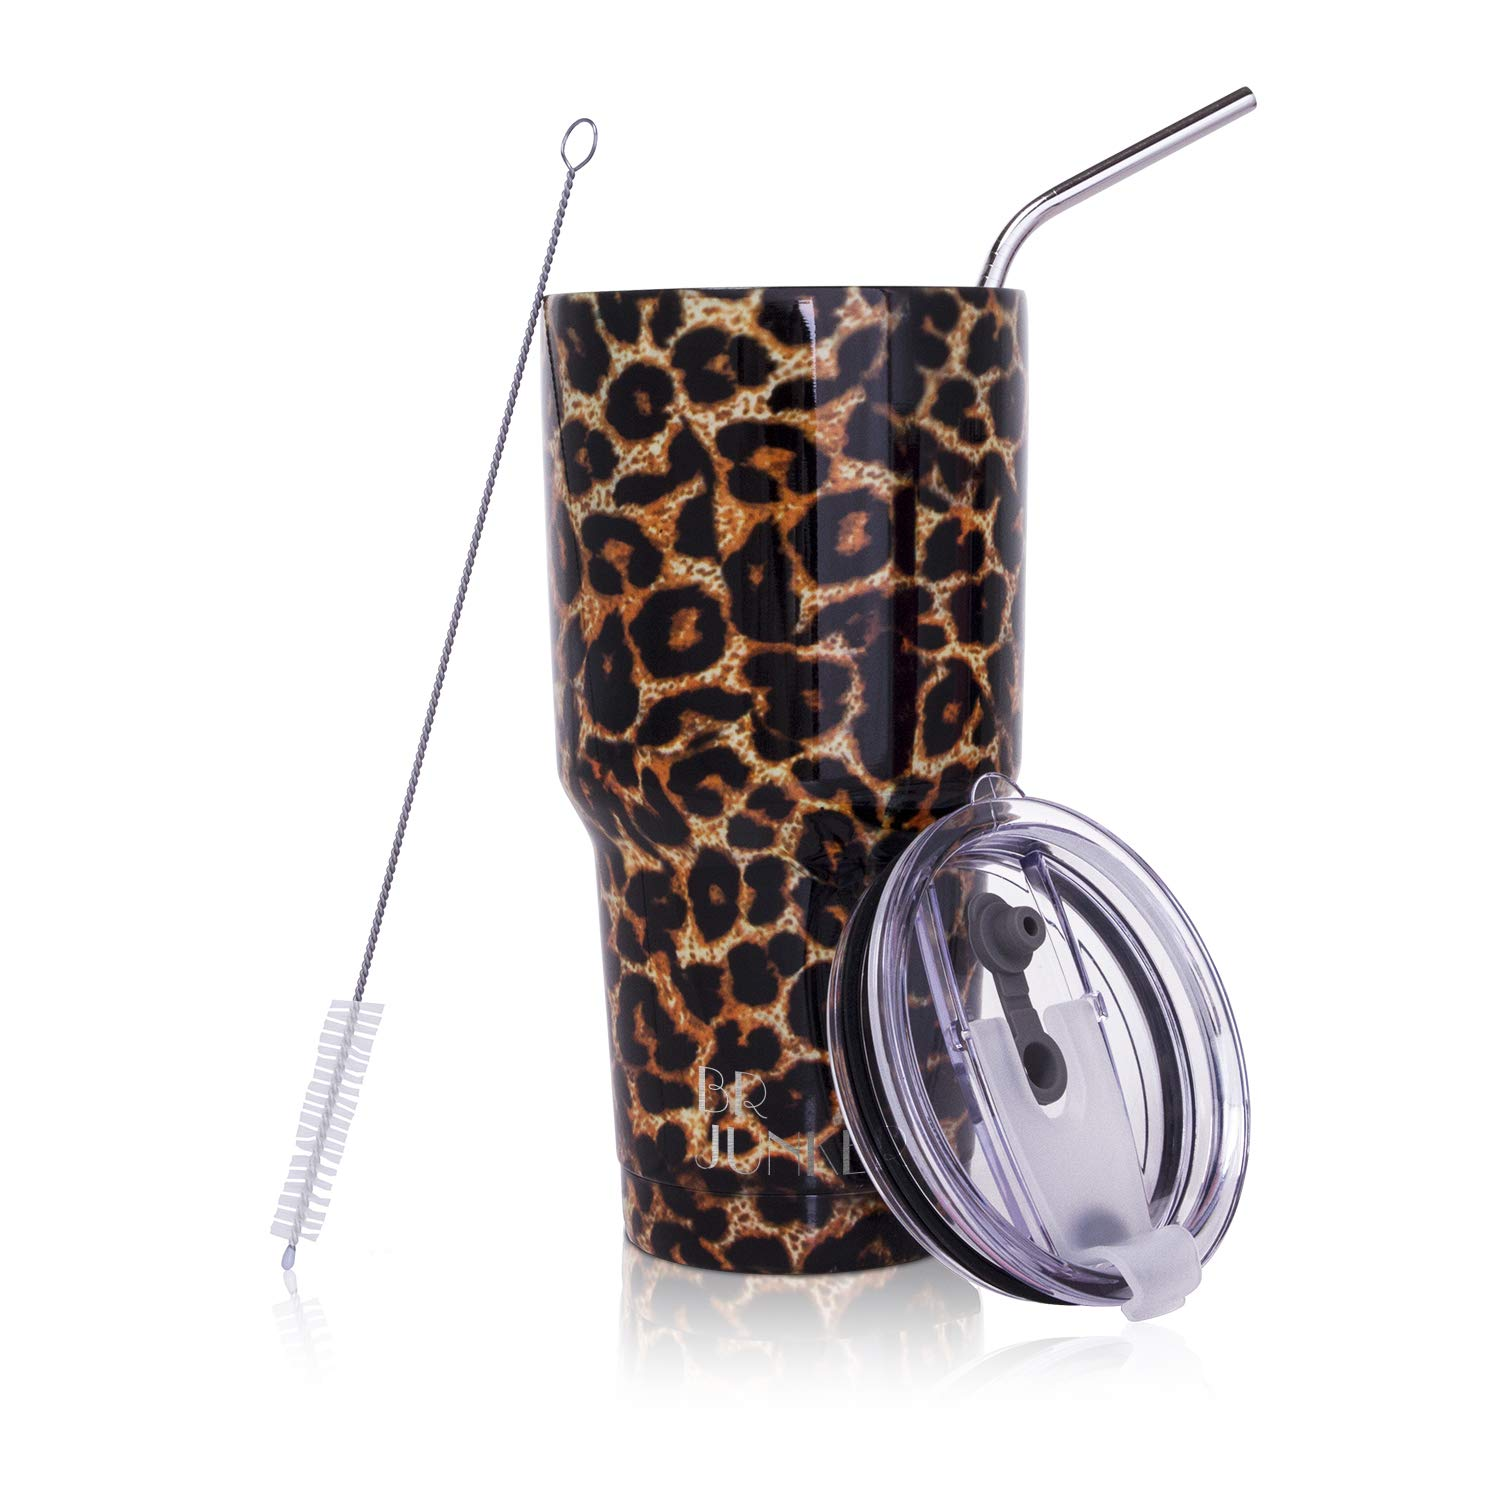 30 oz. Tumbler Double Wall Stainless Steel Vacuum Insulation Travel Cup with Crystal Clear Lid and Straw in Leopard, Perfectly Feminine Sneakers